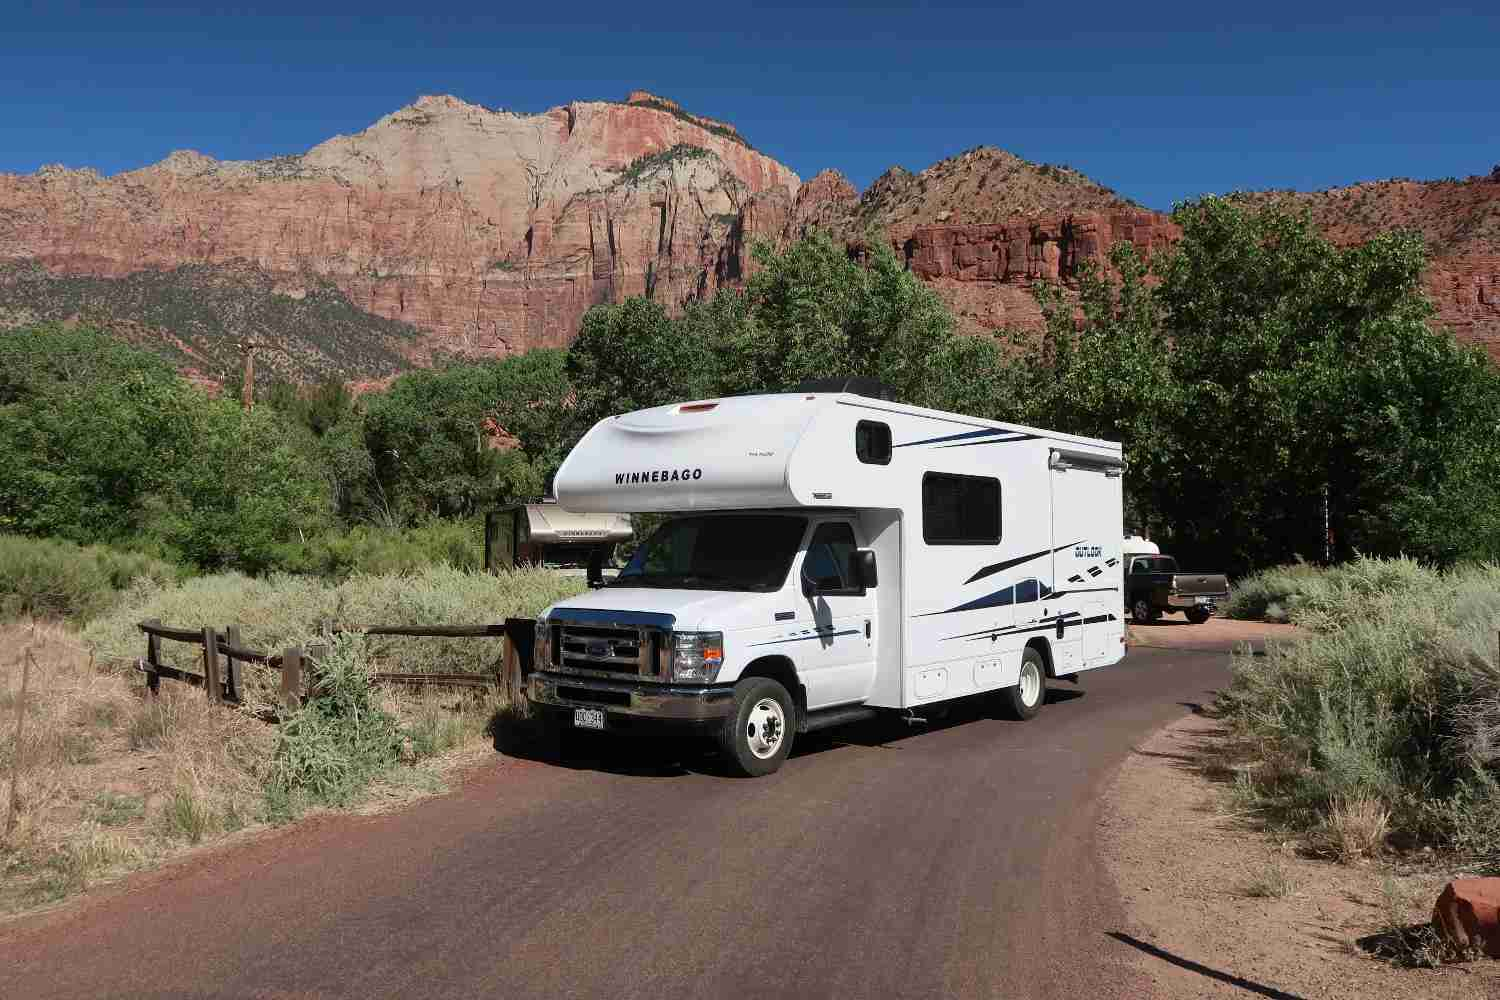 From camping to airfare, use points for all sorts of travel